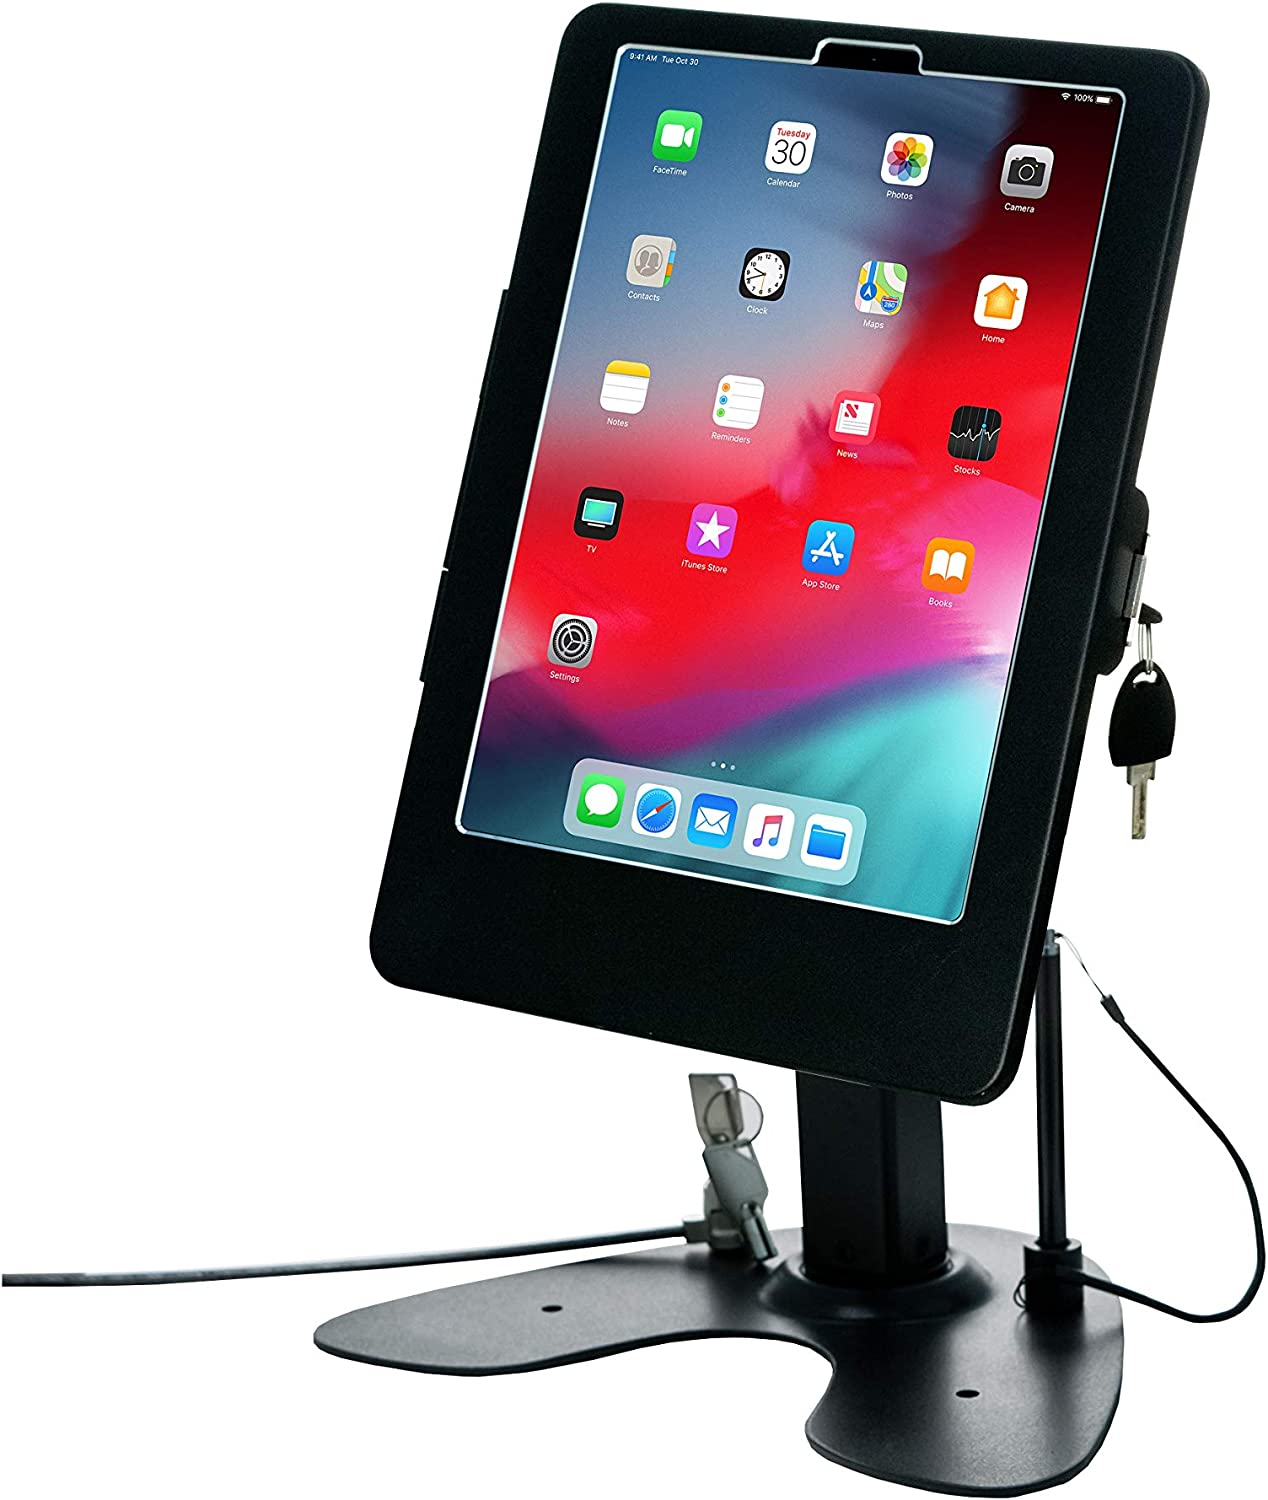 CTA Digital: Dual Security Kiosk Stand for 11-inch iPad Pro